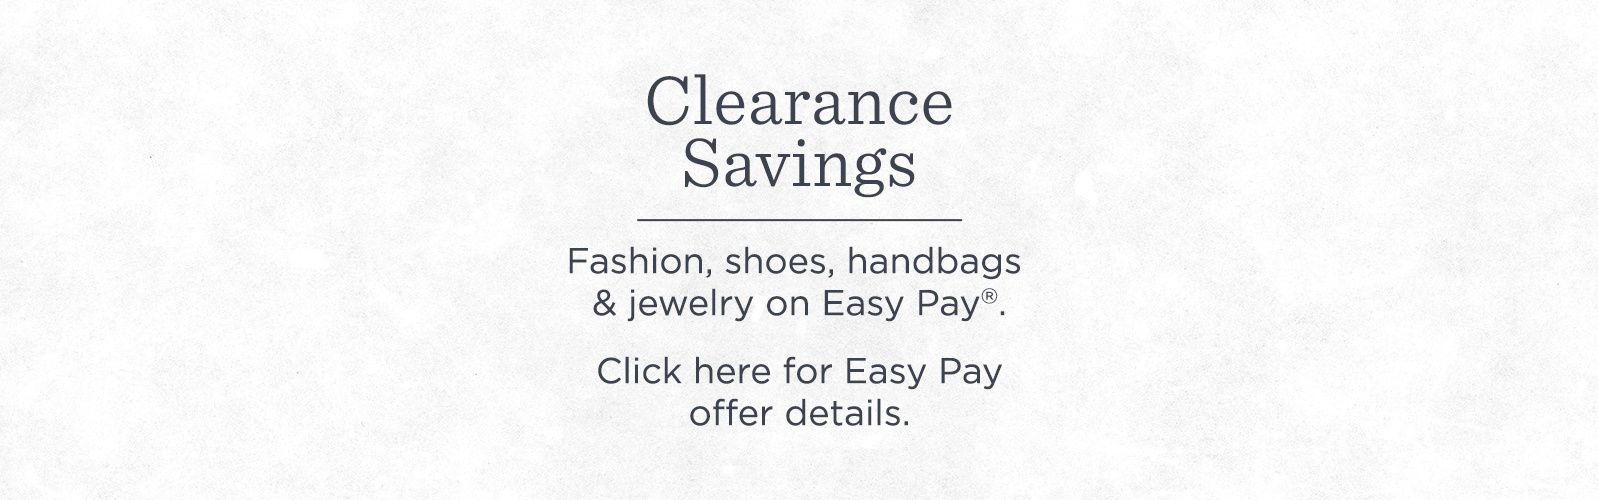 Clearance Savings. Fashion, shoes, handbags & jewelry on Easy Pay®. Click here for offer details.